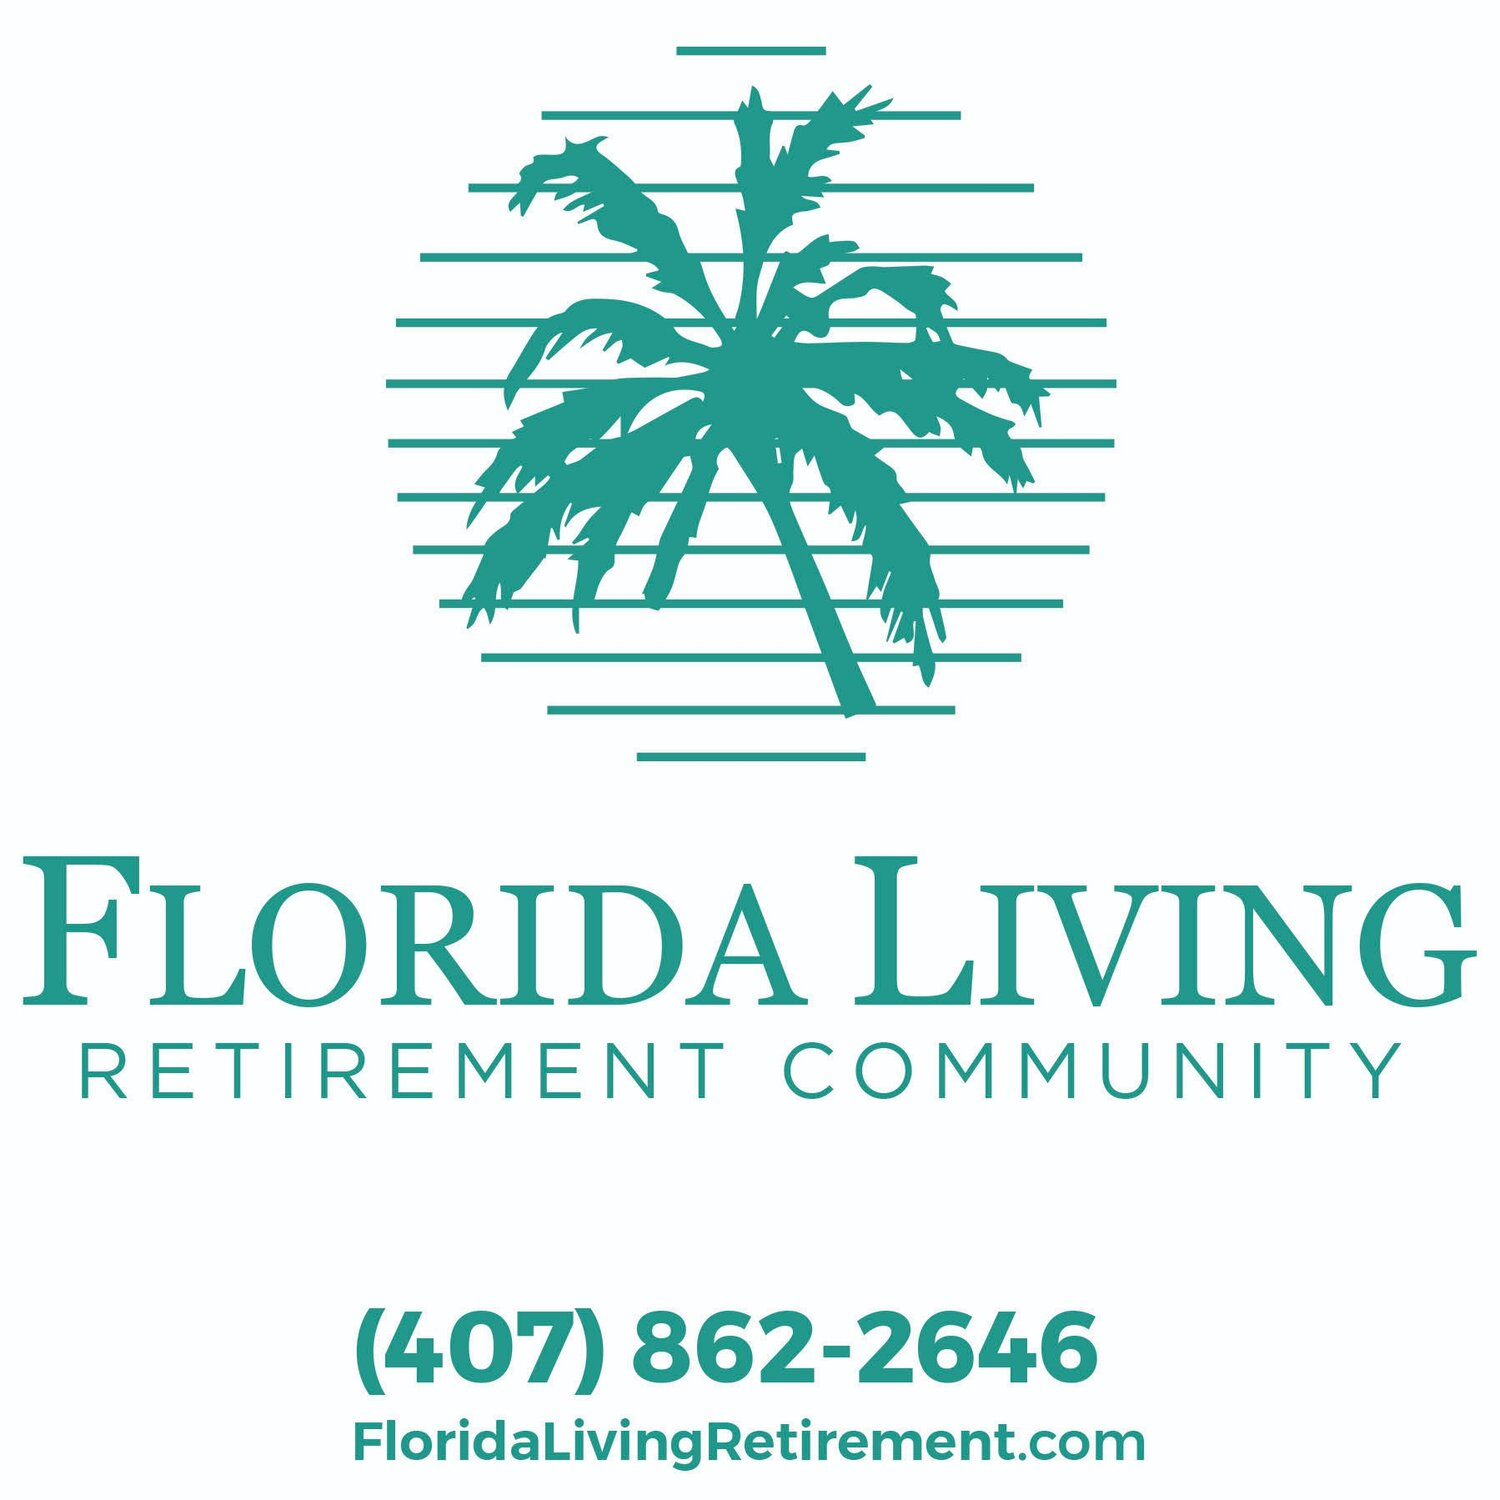 Florida Living Retirement Community